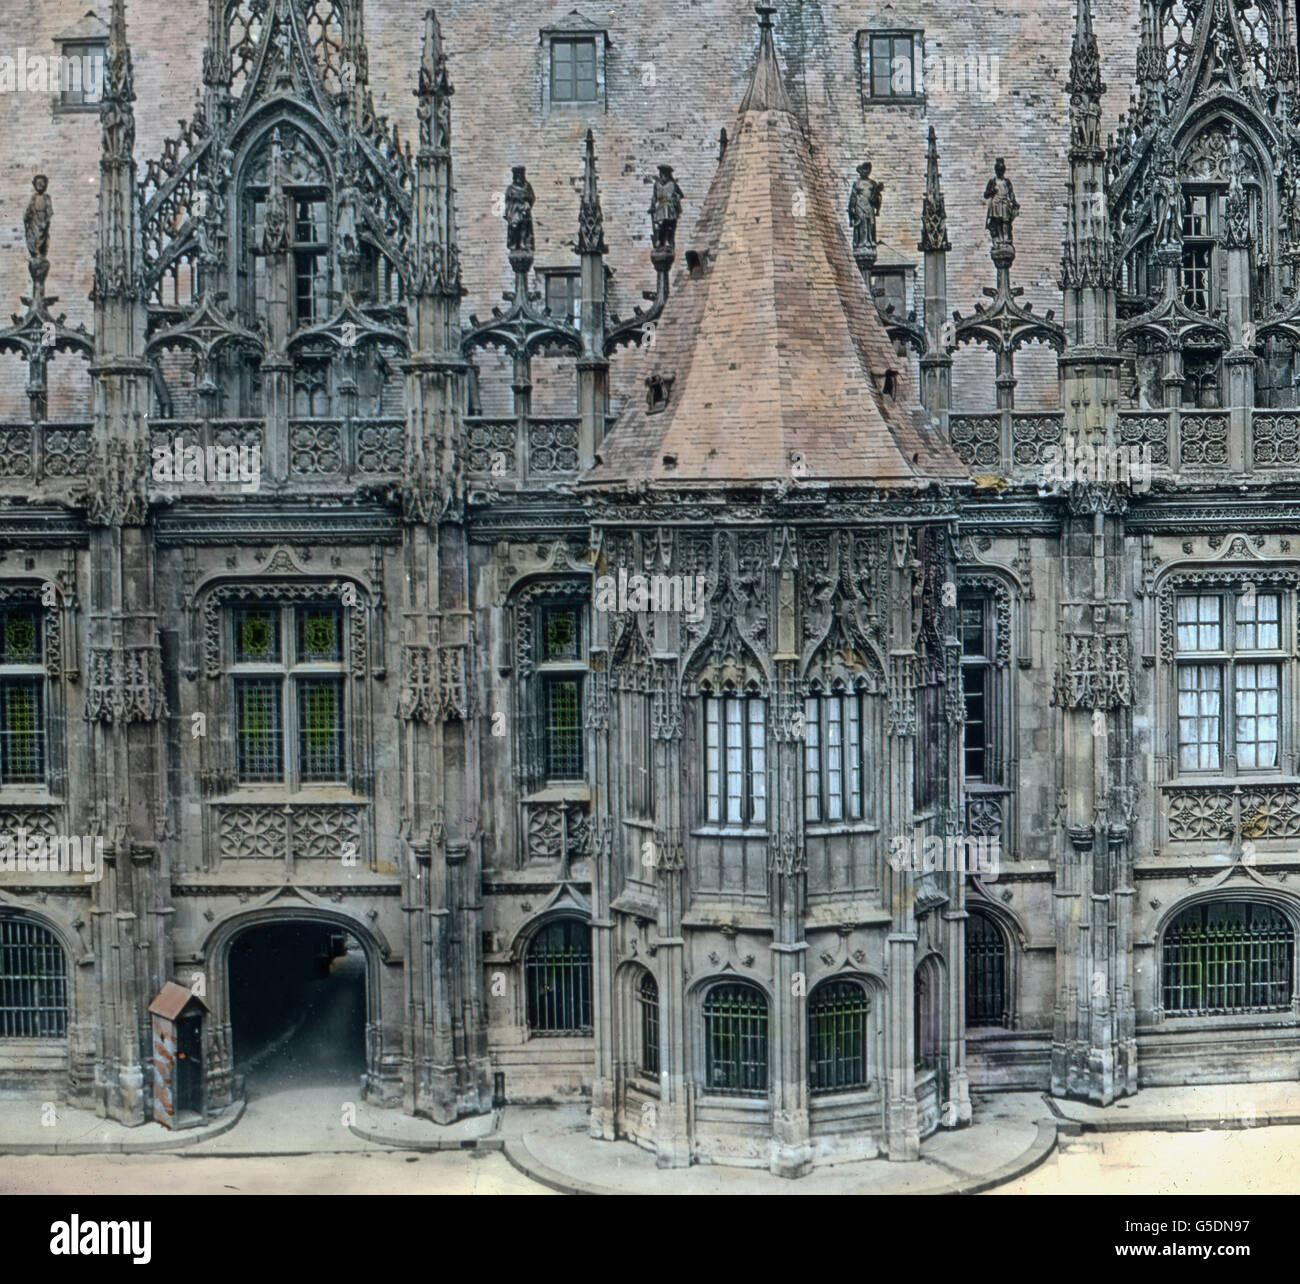 detail der fassade bin justizpalast in rouen im norden frankreichs frankreich rouen seine. Black Bedroom Furniture Sets. Home Design Ideas